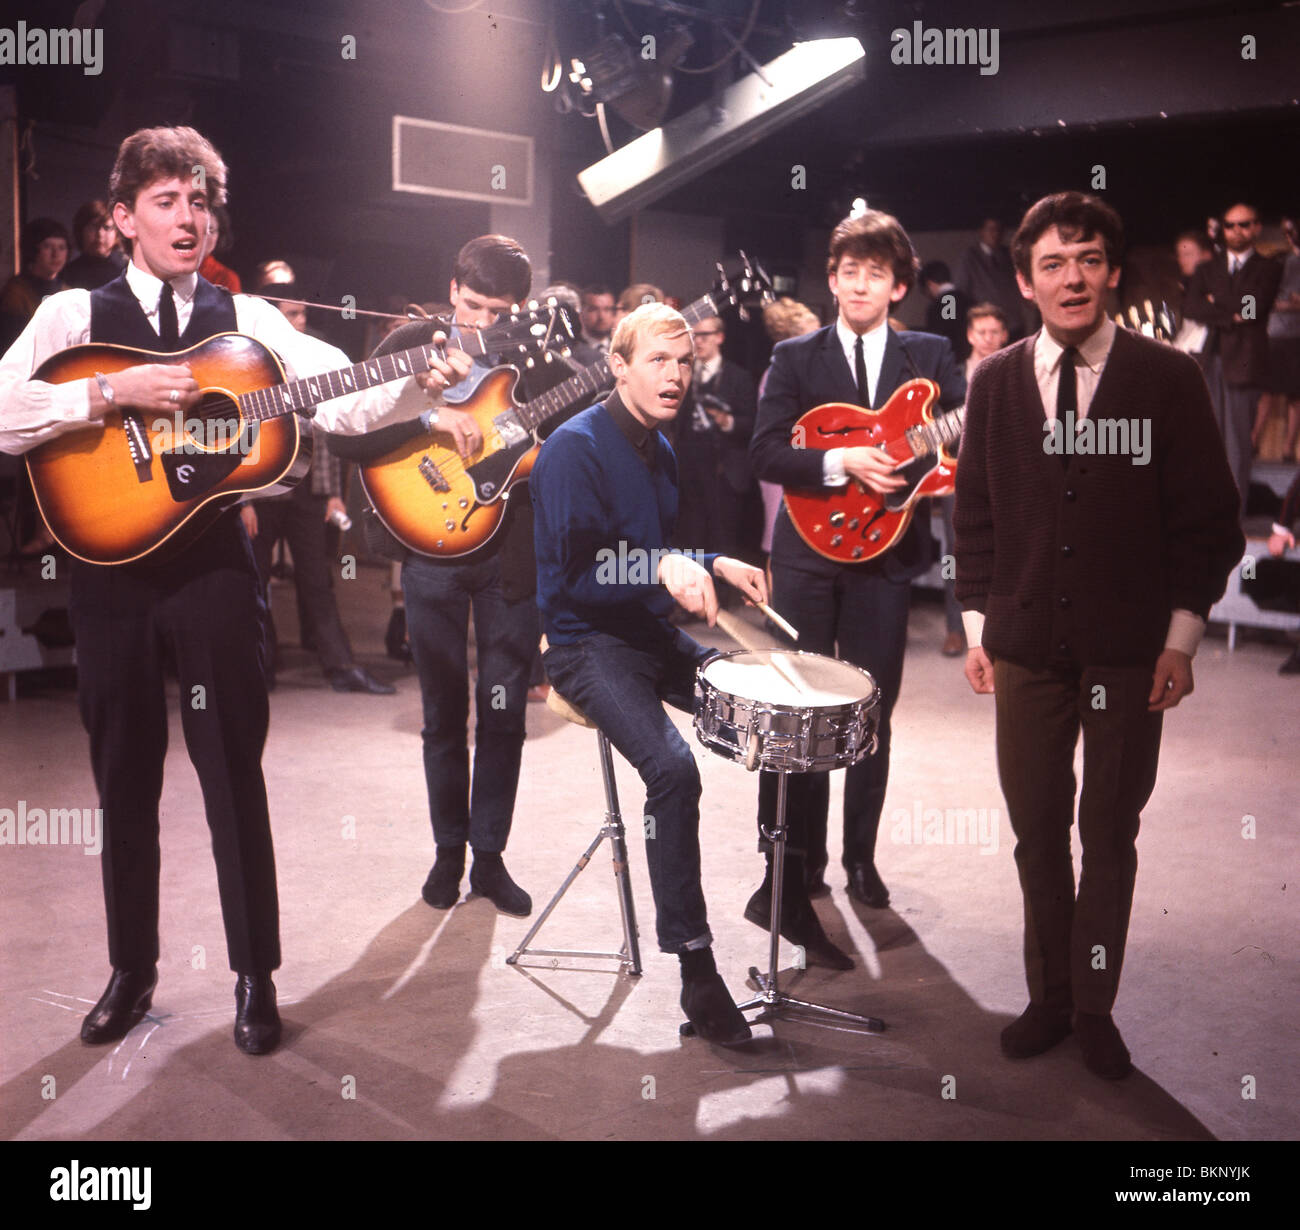 https://c8.alamy.com/comp/BKNYJK/hollies-uk-group-on-ready-steadygo-november-1964-from-l-graham-nash-BKNYJK.jpg